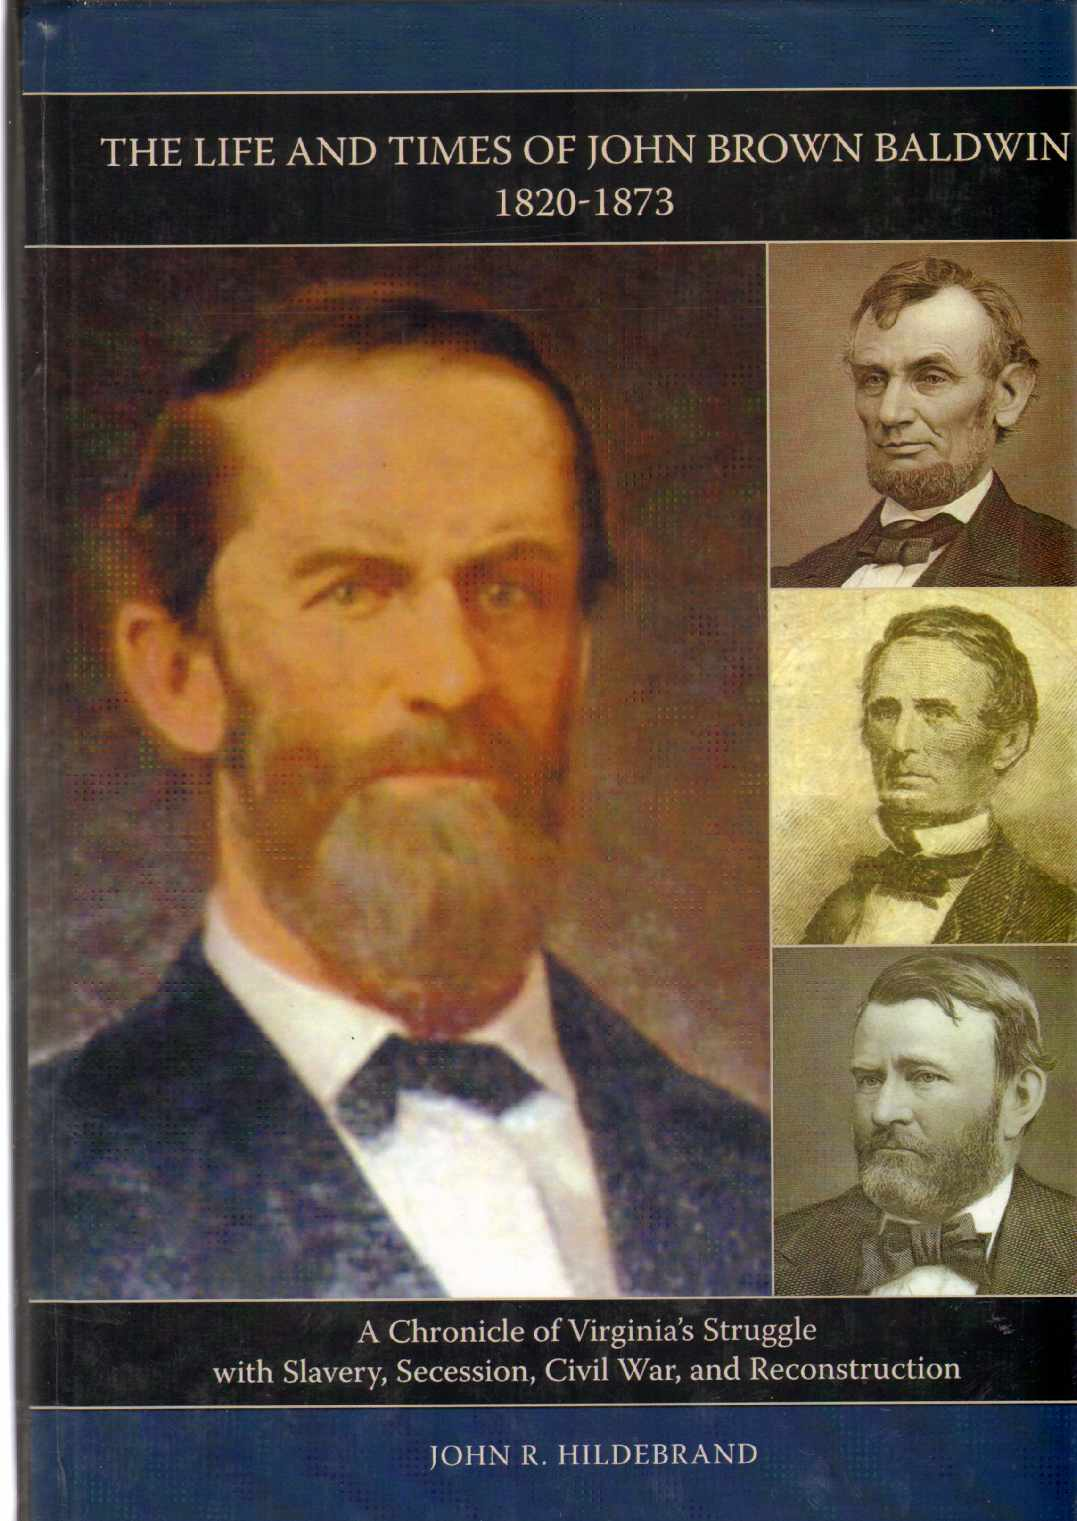 Image for THE LIFE AND TIMES OF JOHN BROWN BALDWIN, 1820-1873 A Chronicle of Virginia's Struggle with Slavery, Secession, Civil War, and Reconstruction